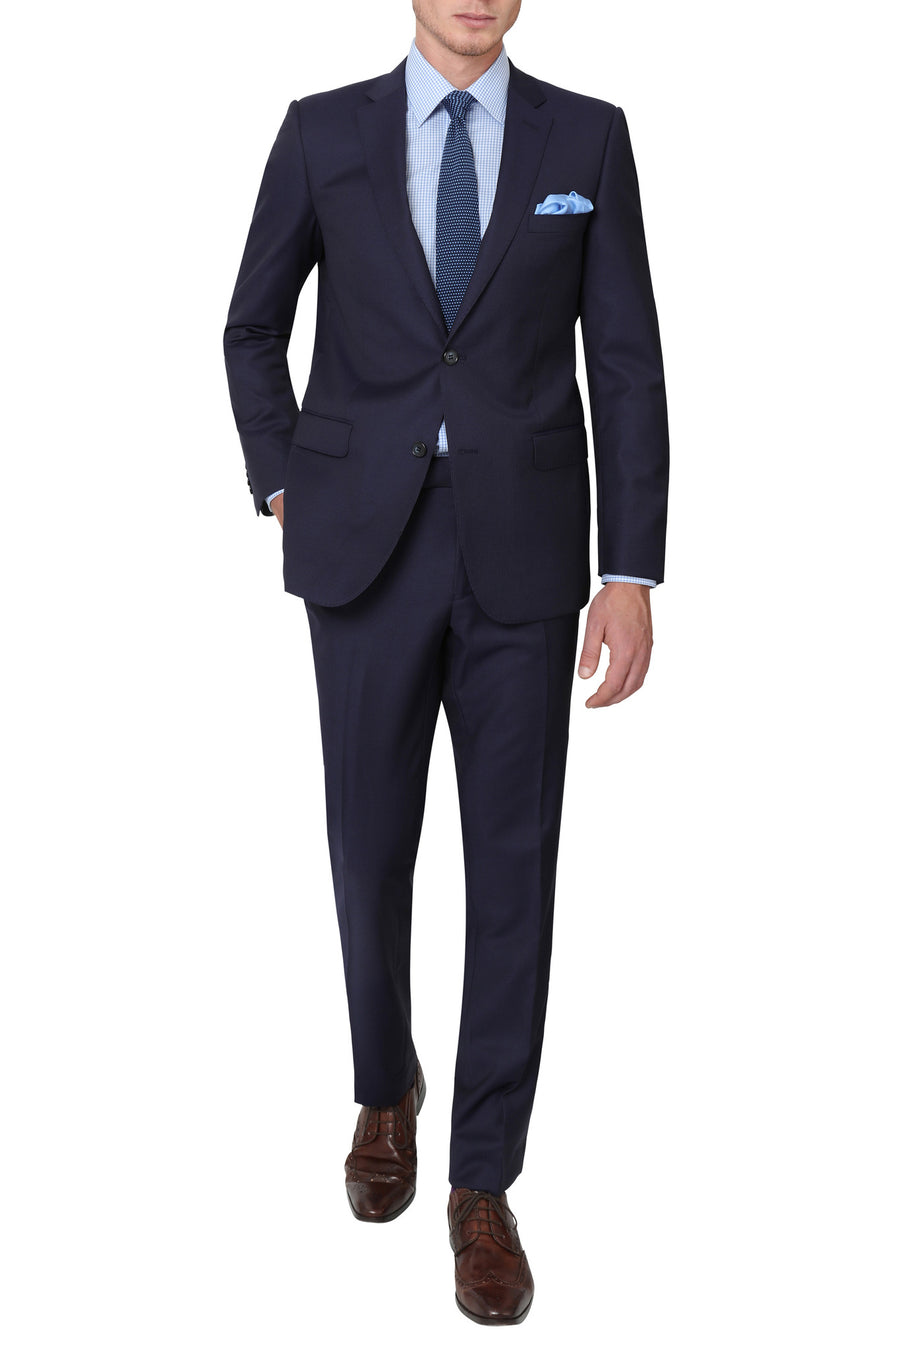 Studio Italia Suit in Blue Stripe